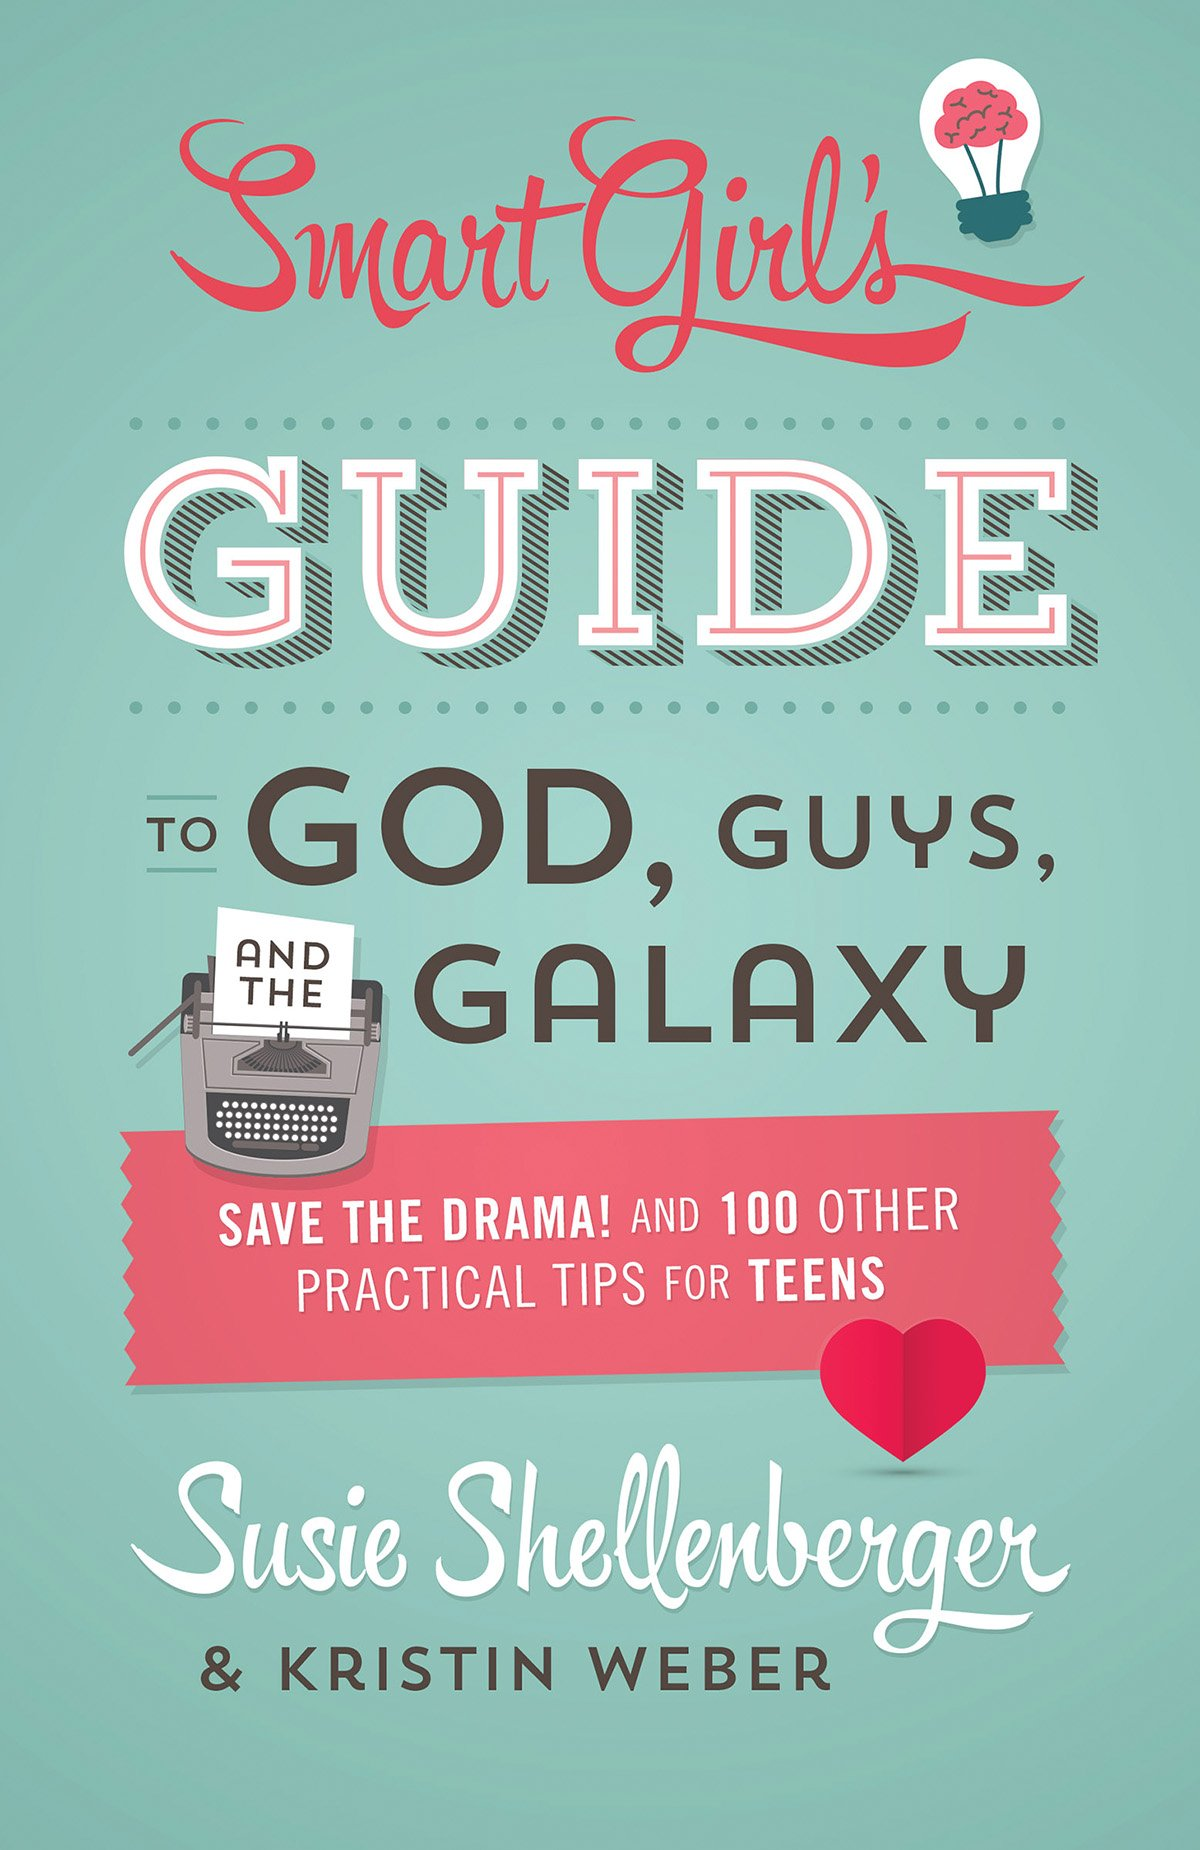 Smart Girl's Guide to God, Guys and the Galaxy